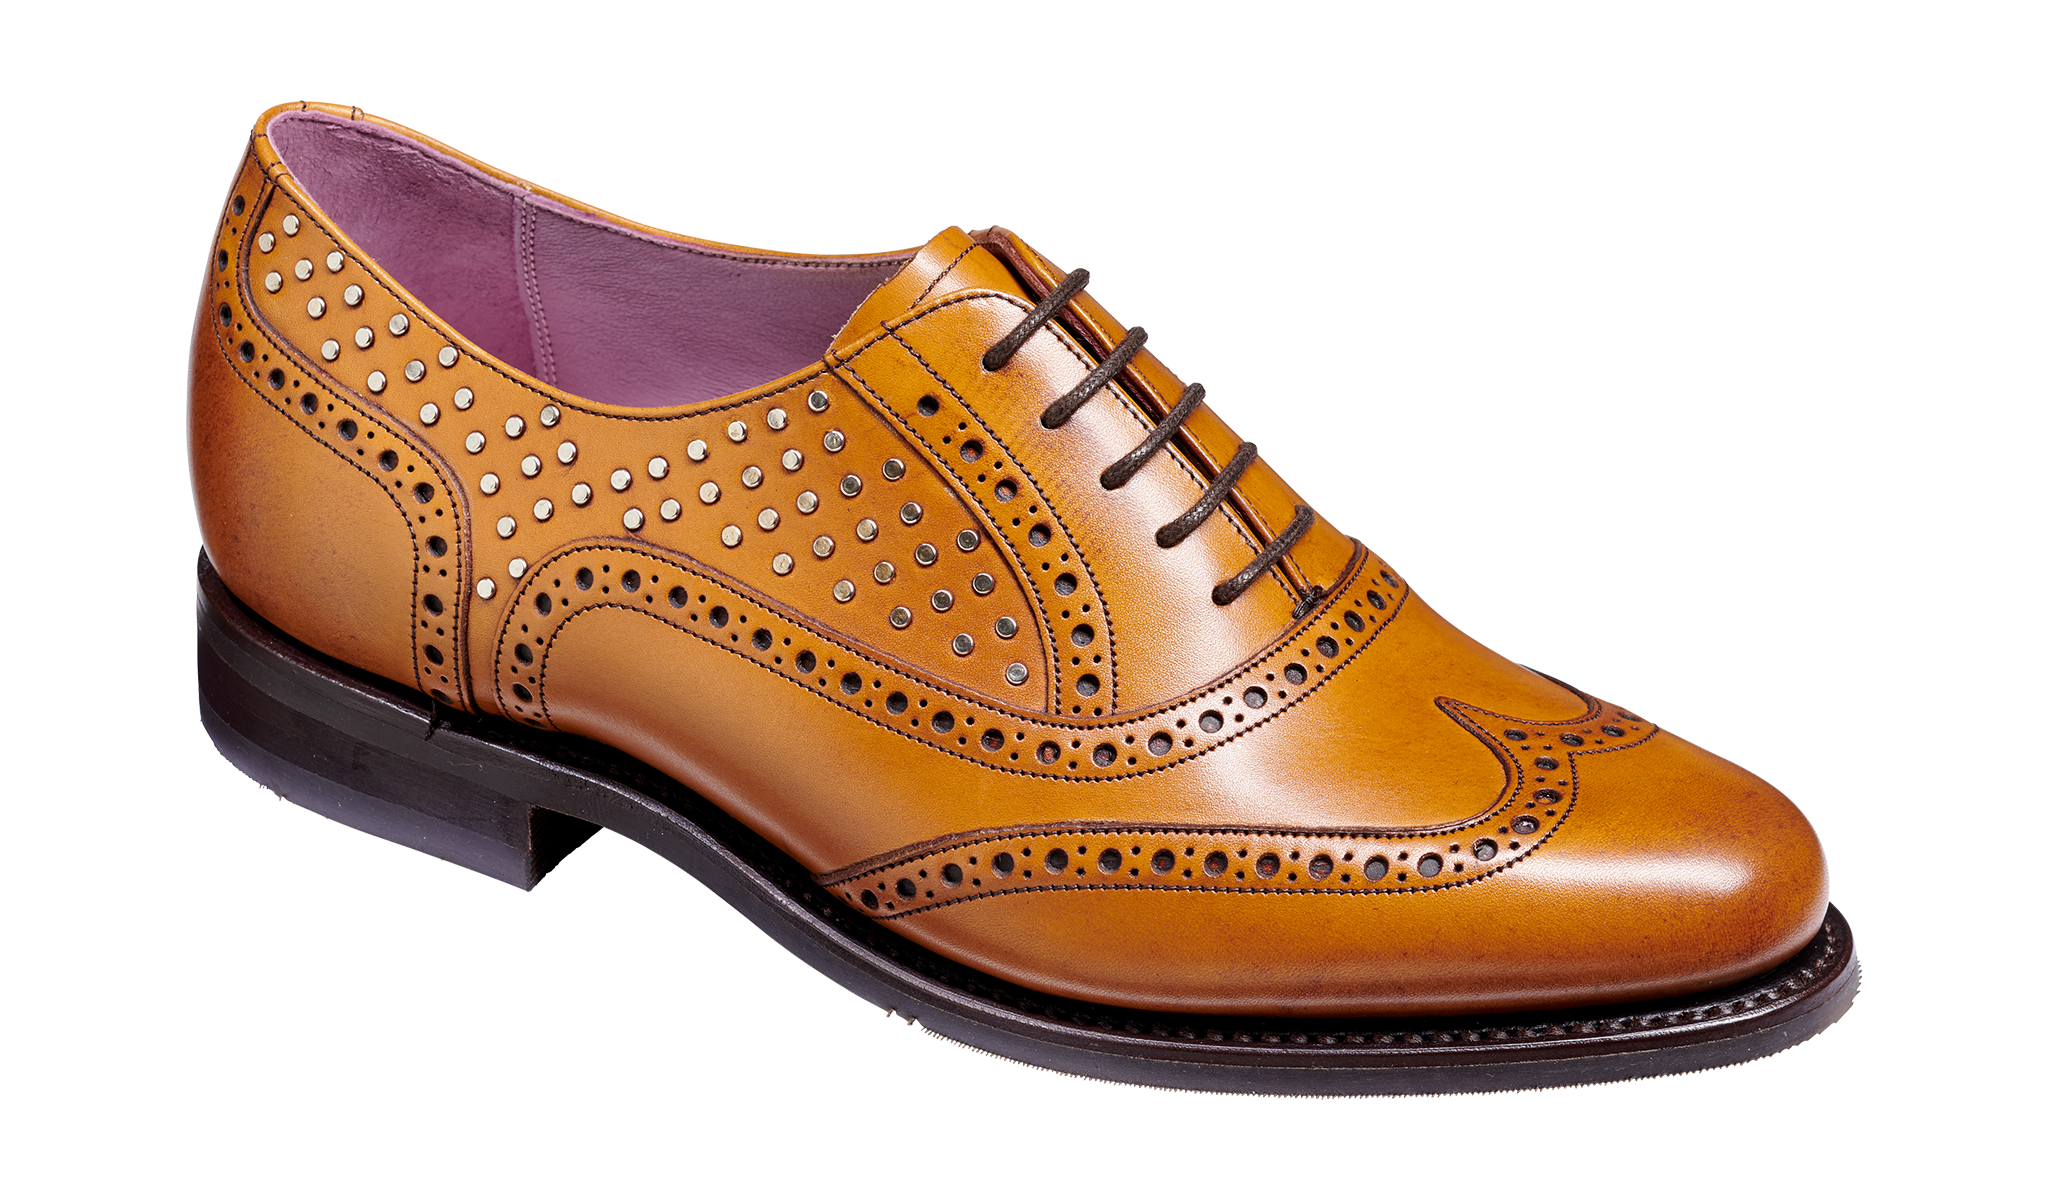 Freya - Women's oxford brogue from Barker